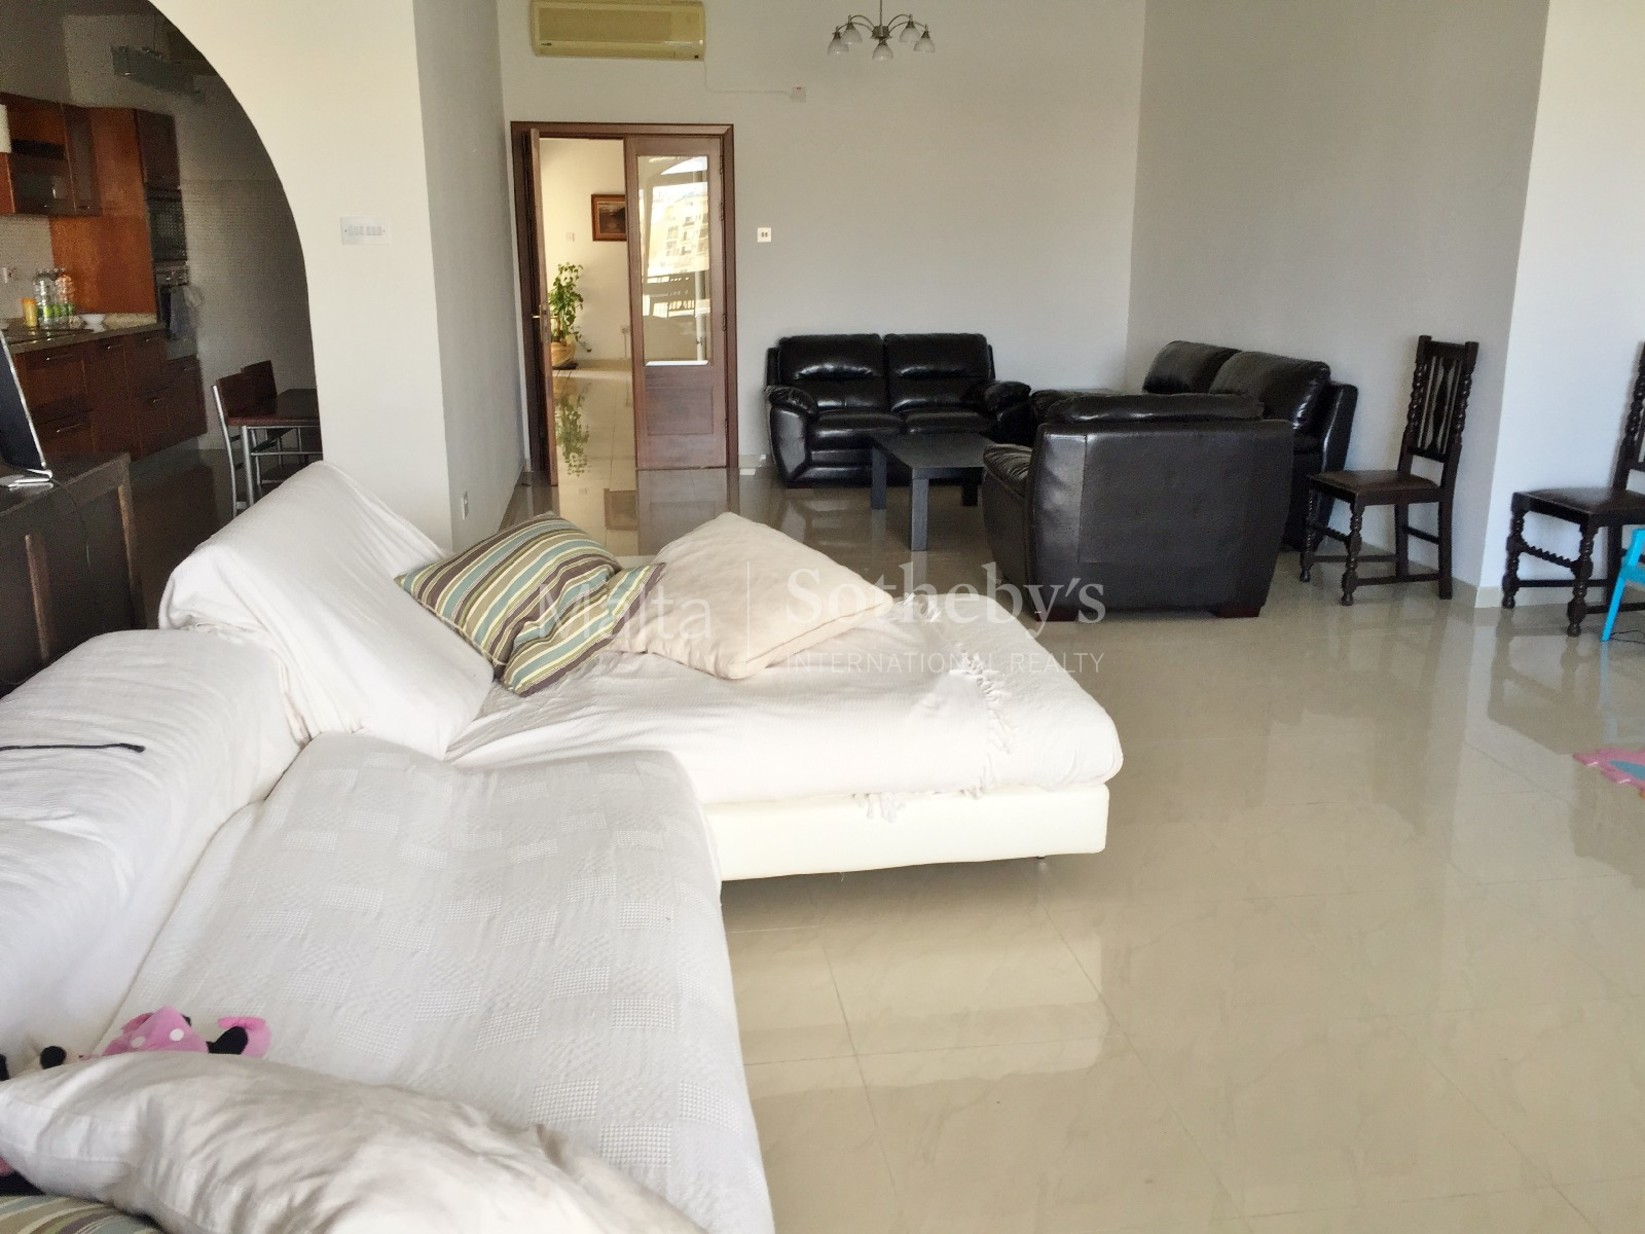 3 bed Apartment For Rent in Msida, Msida - thumb 4